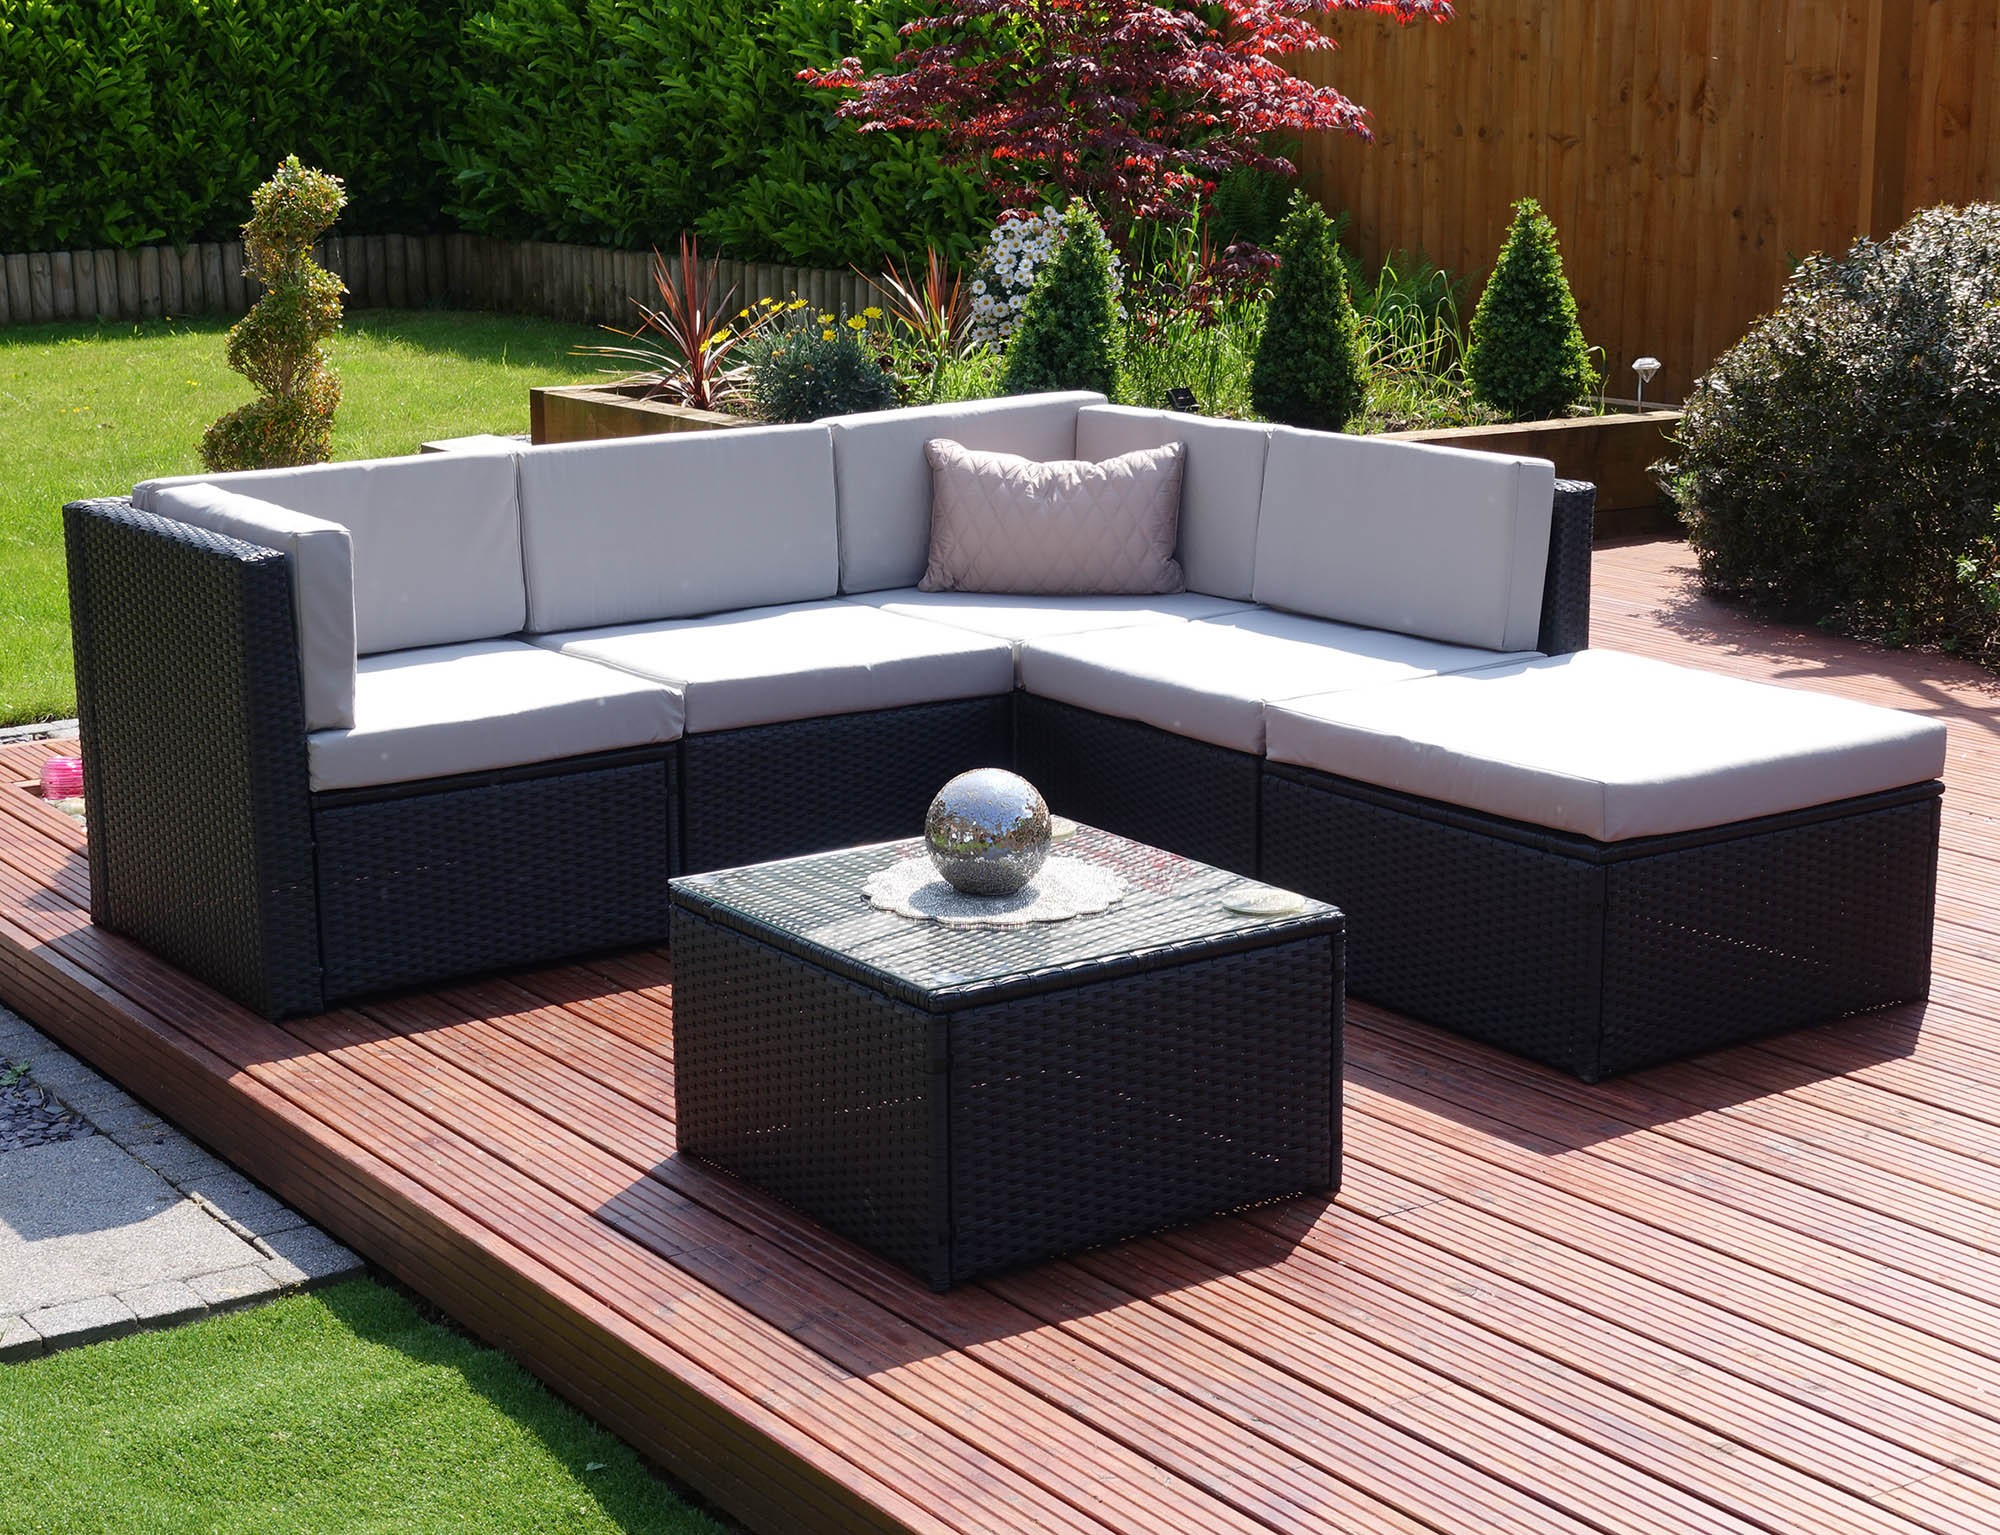 Stunning ... 6 piece barcelona modular rattan corner sofa set in black with light washepc